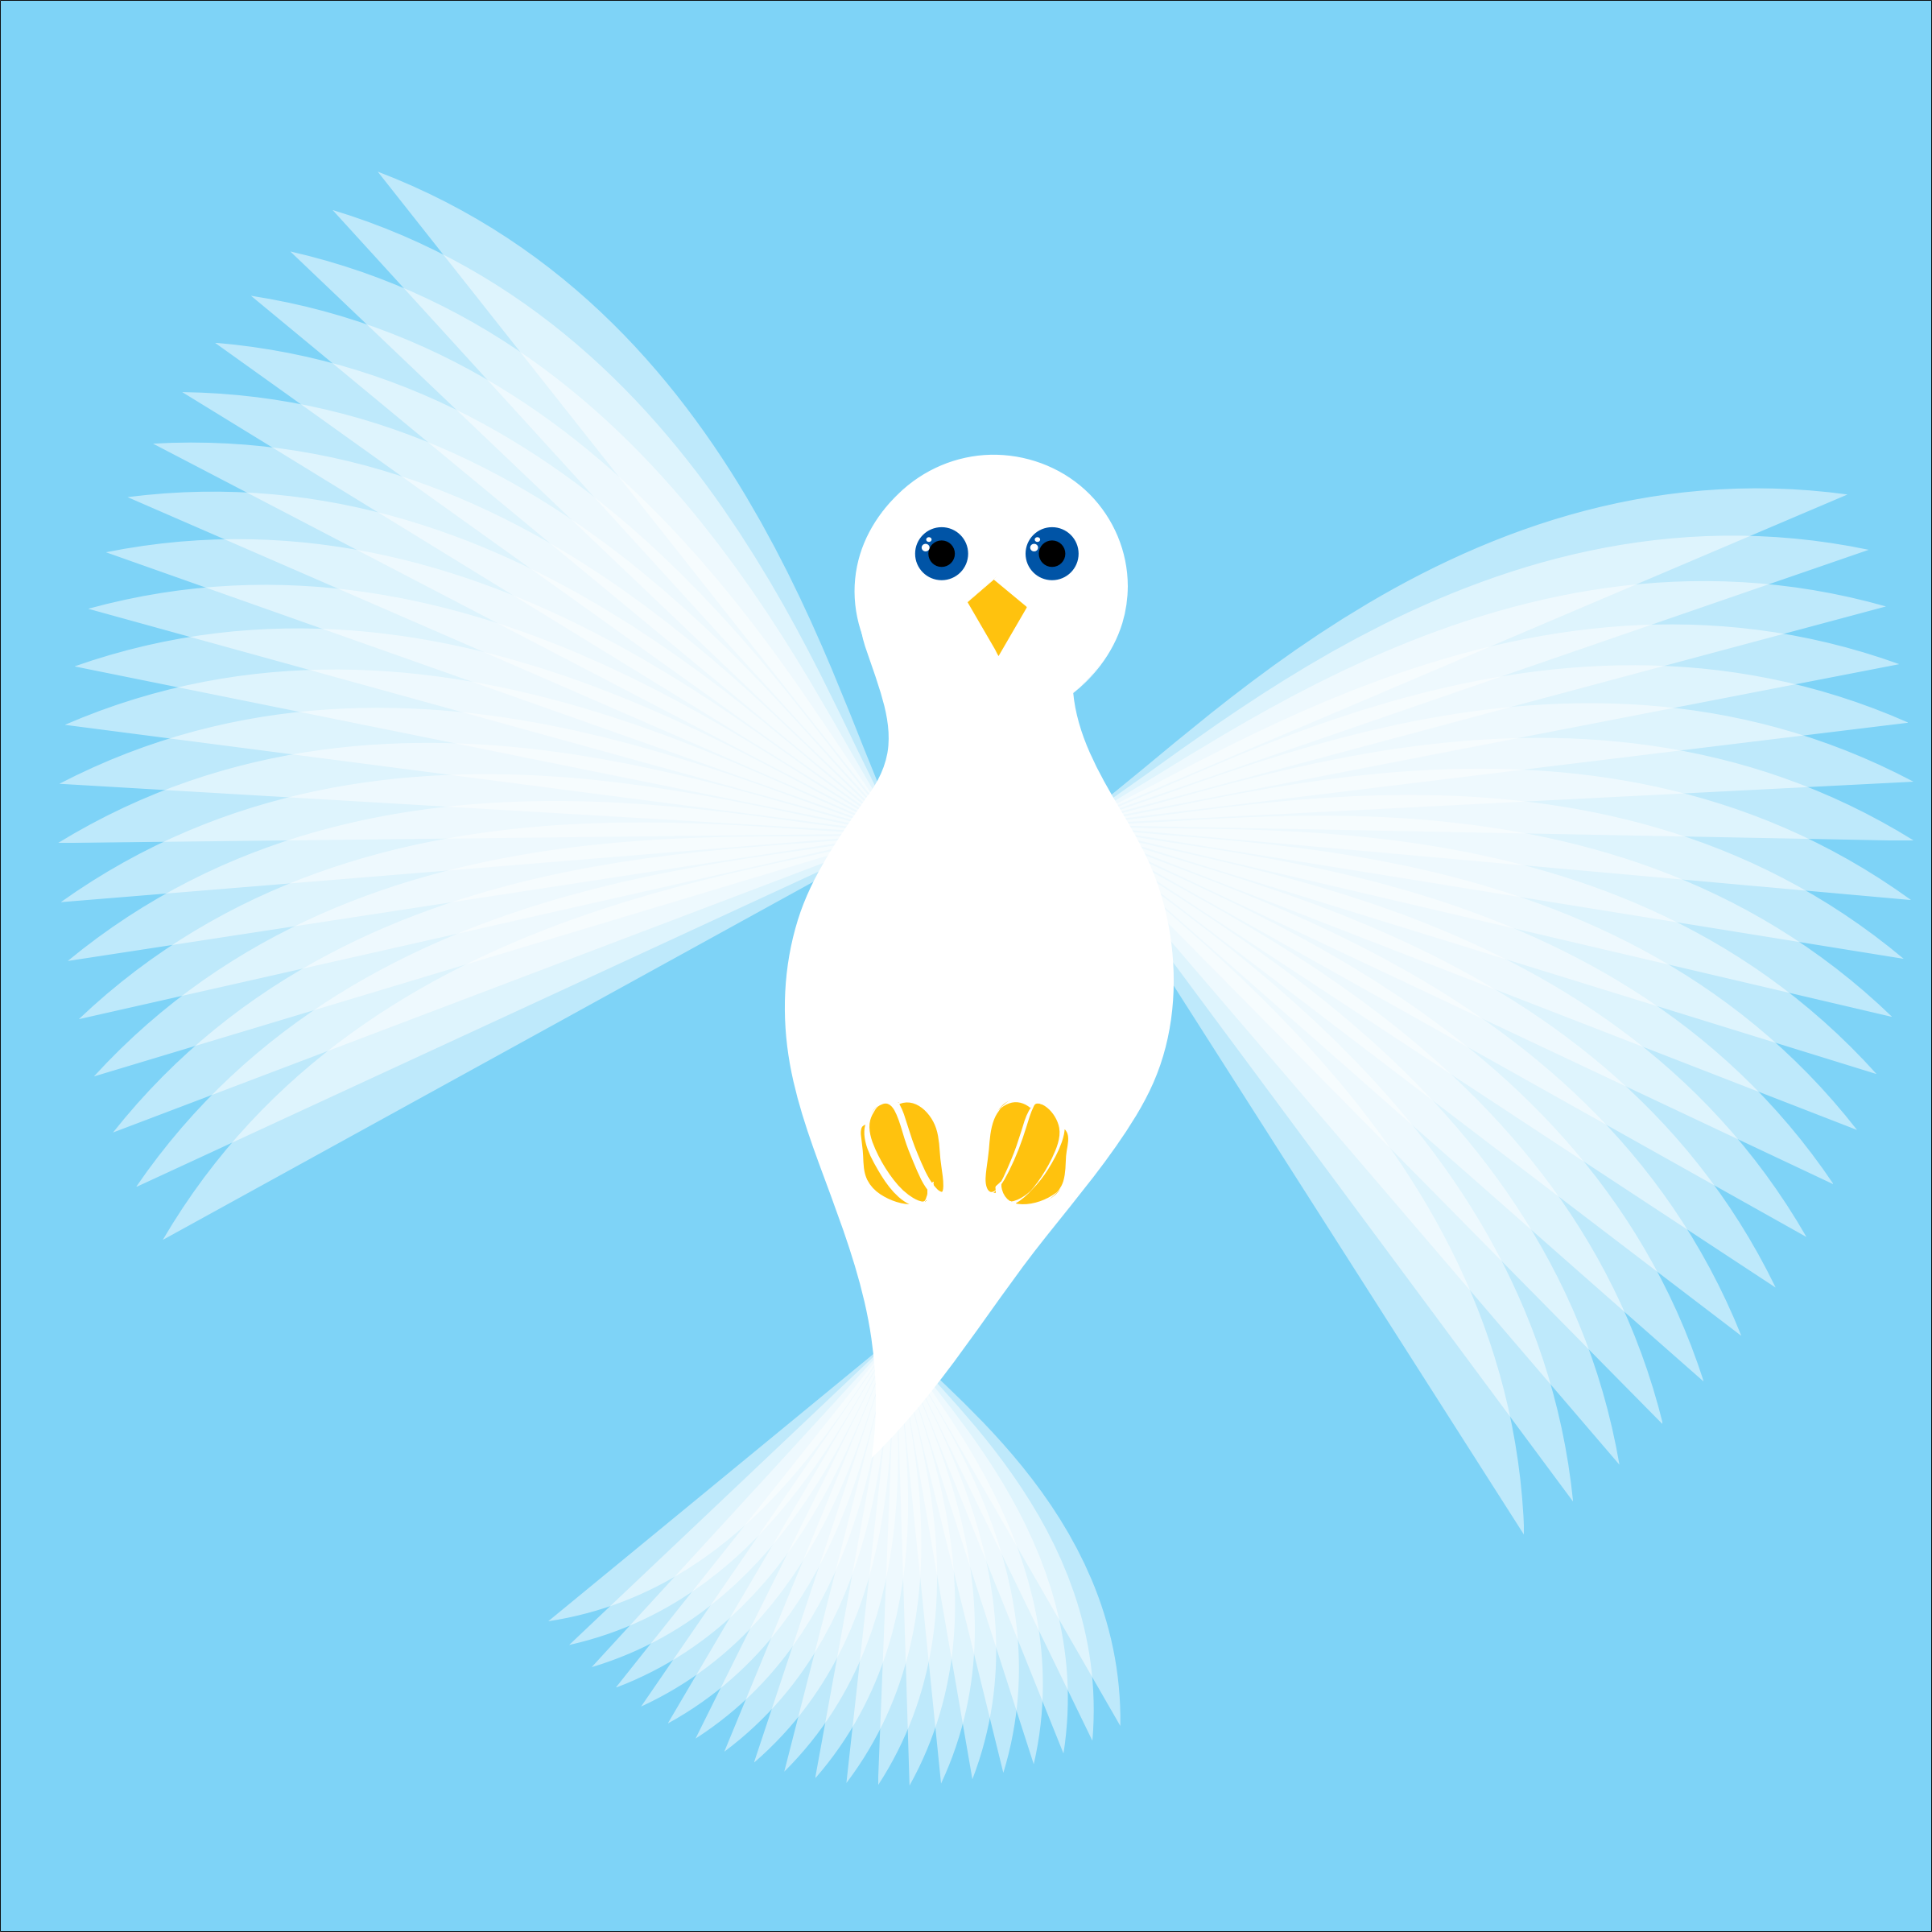 Flying Dove Blue background no outlines by dkonz01